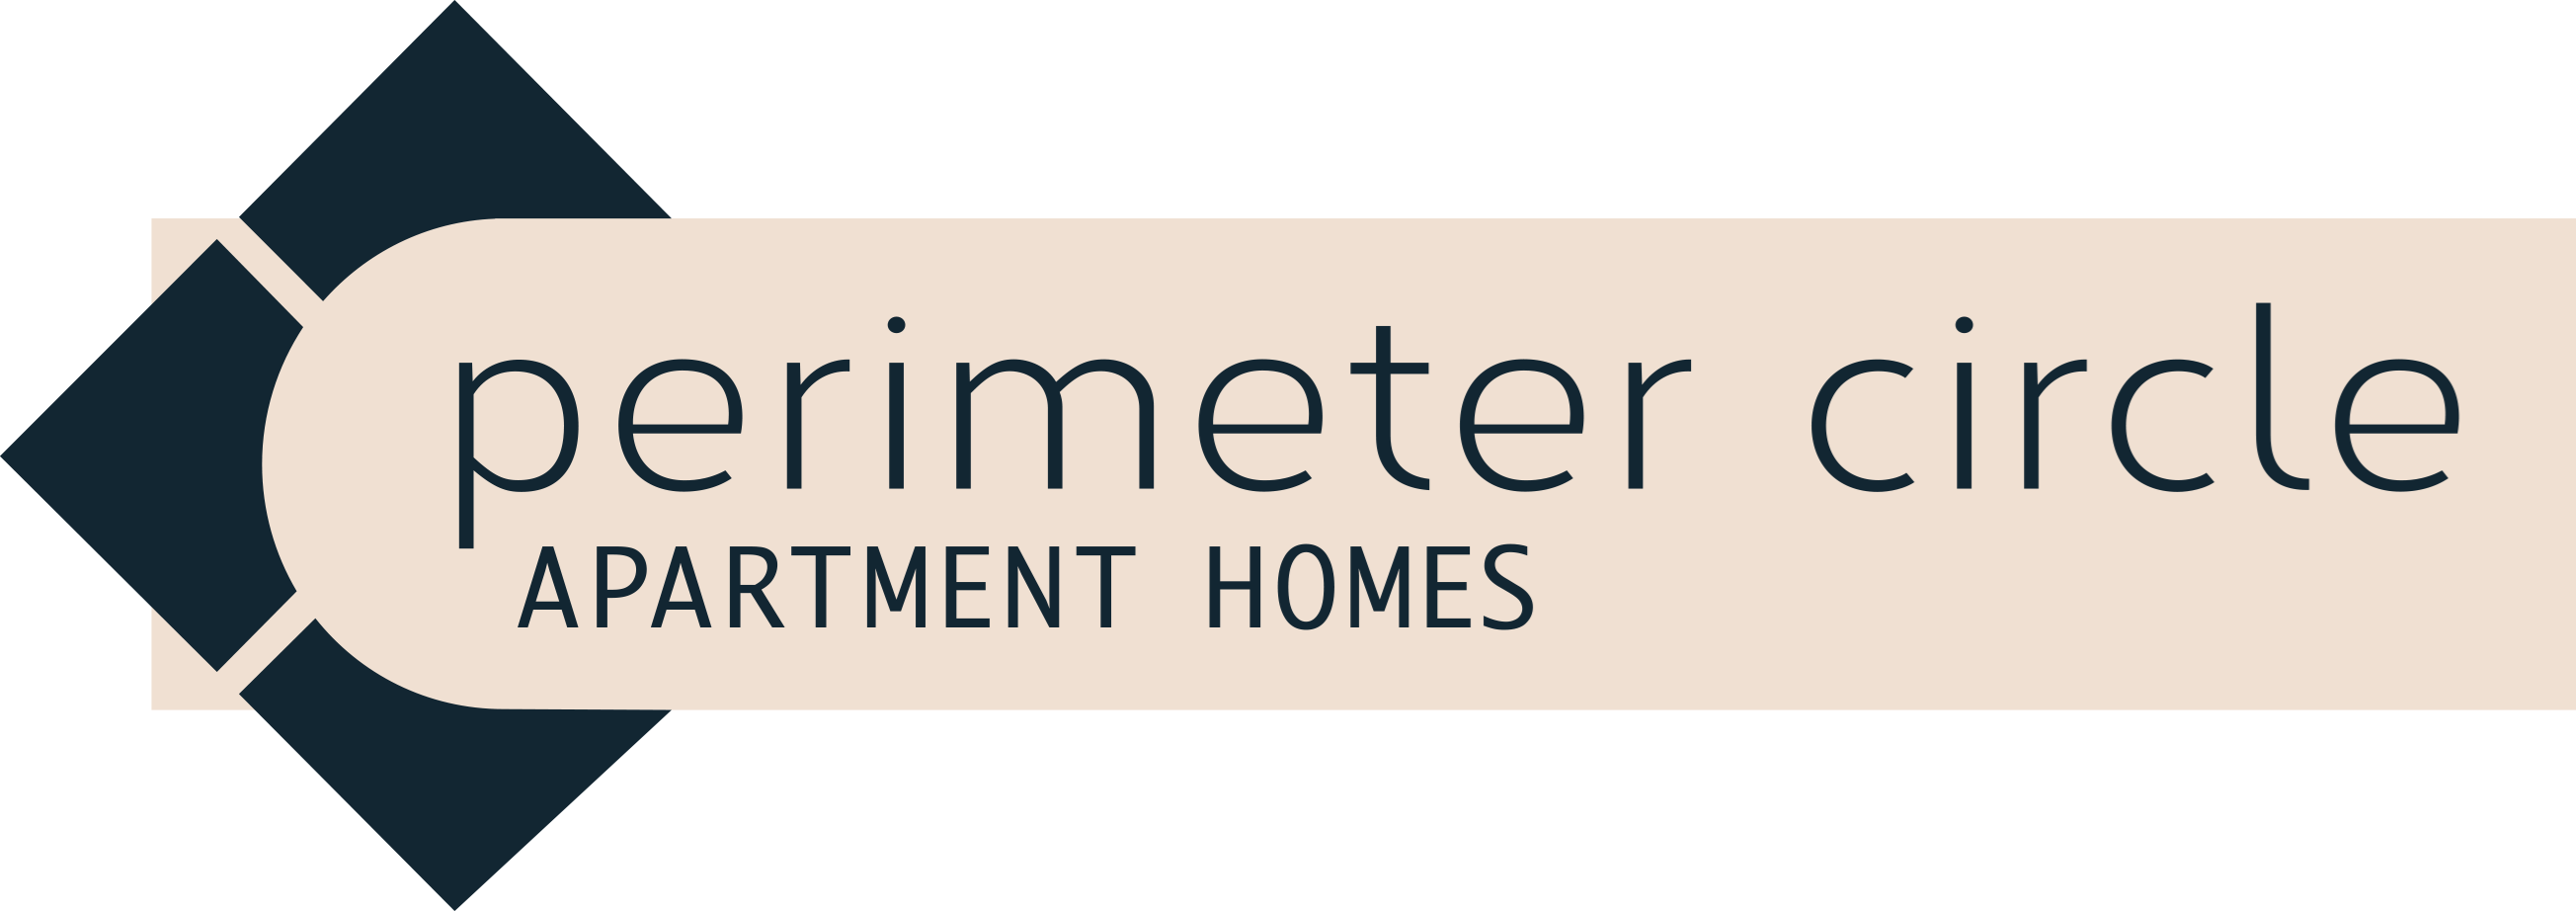 Perimeter Circle Apartment Homes Logo